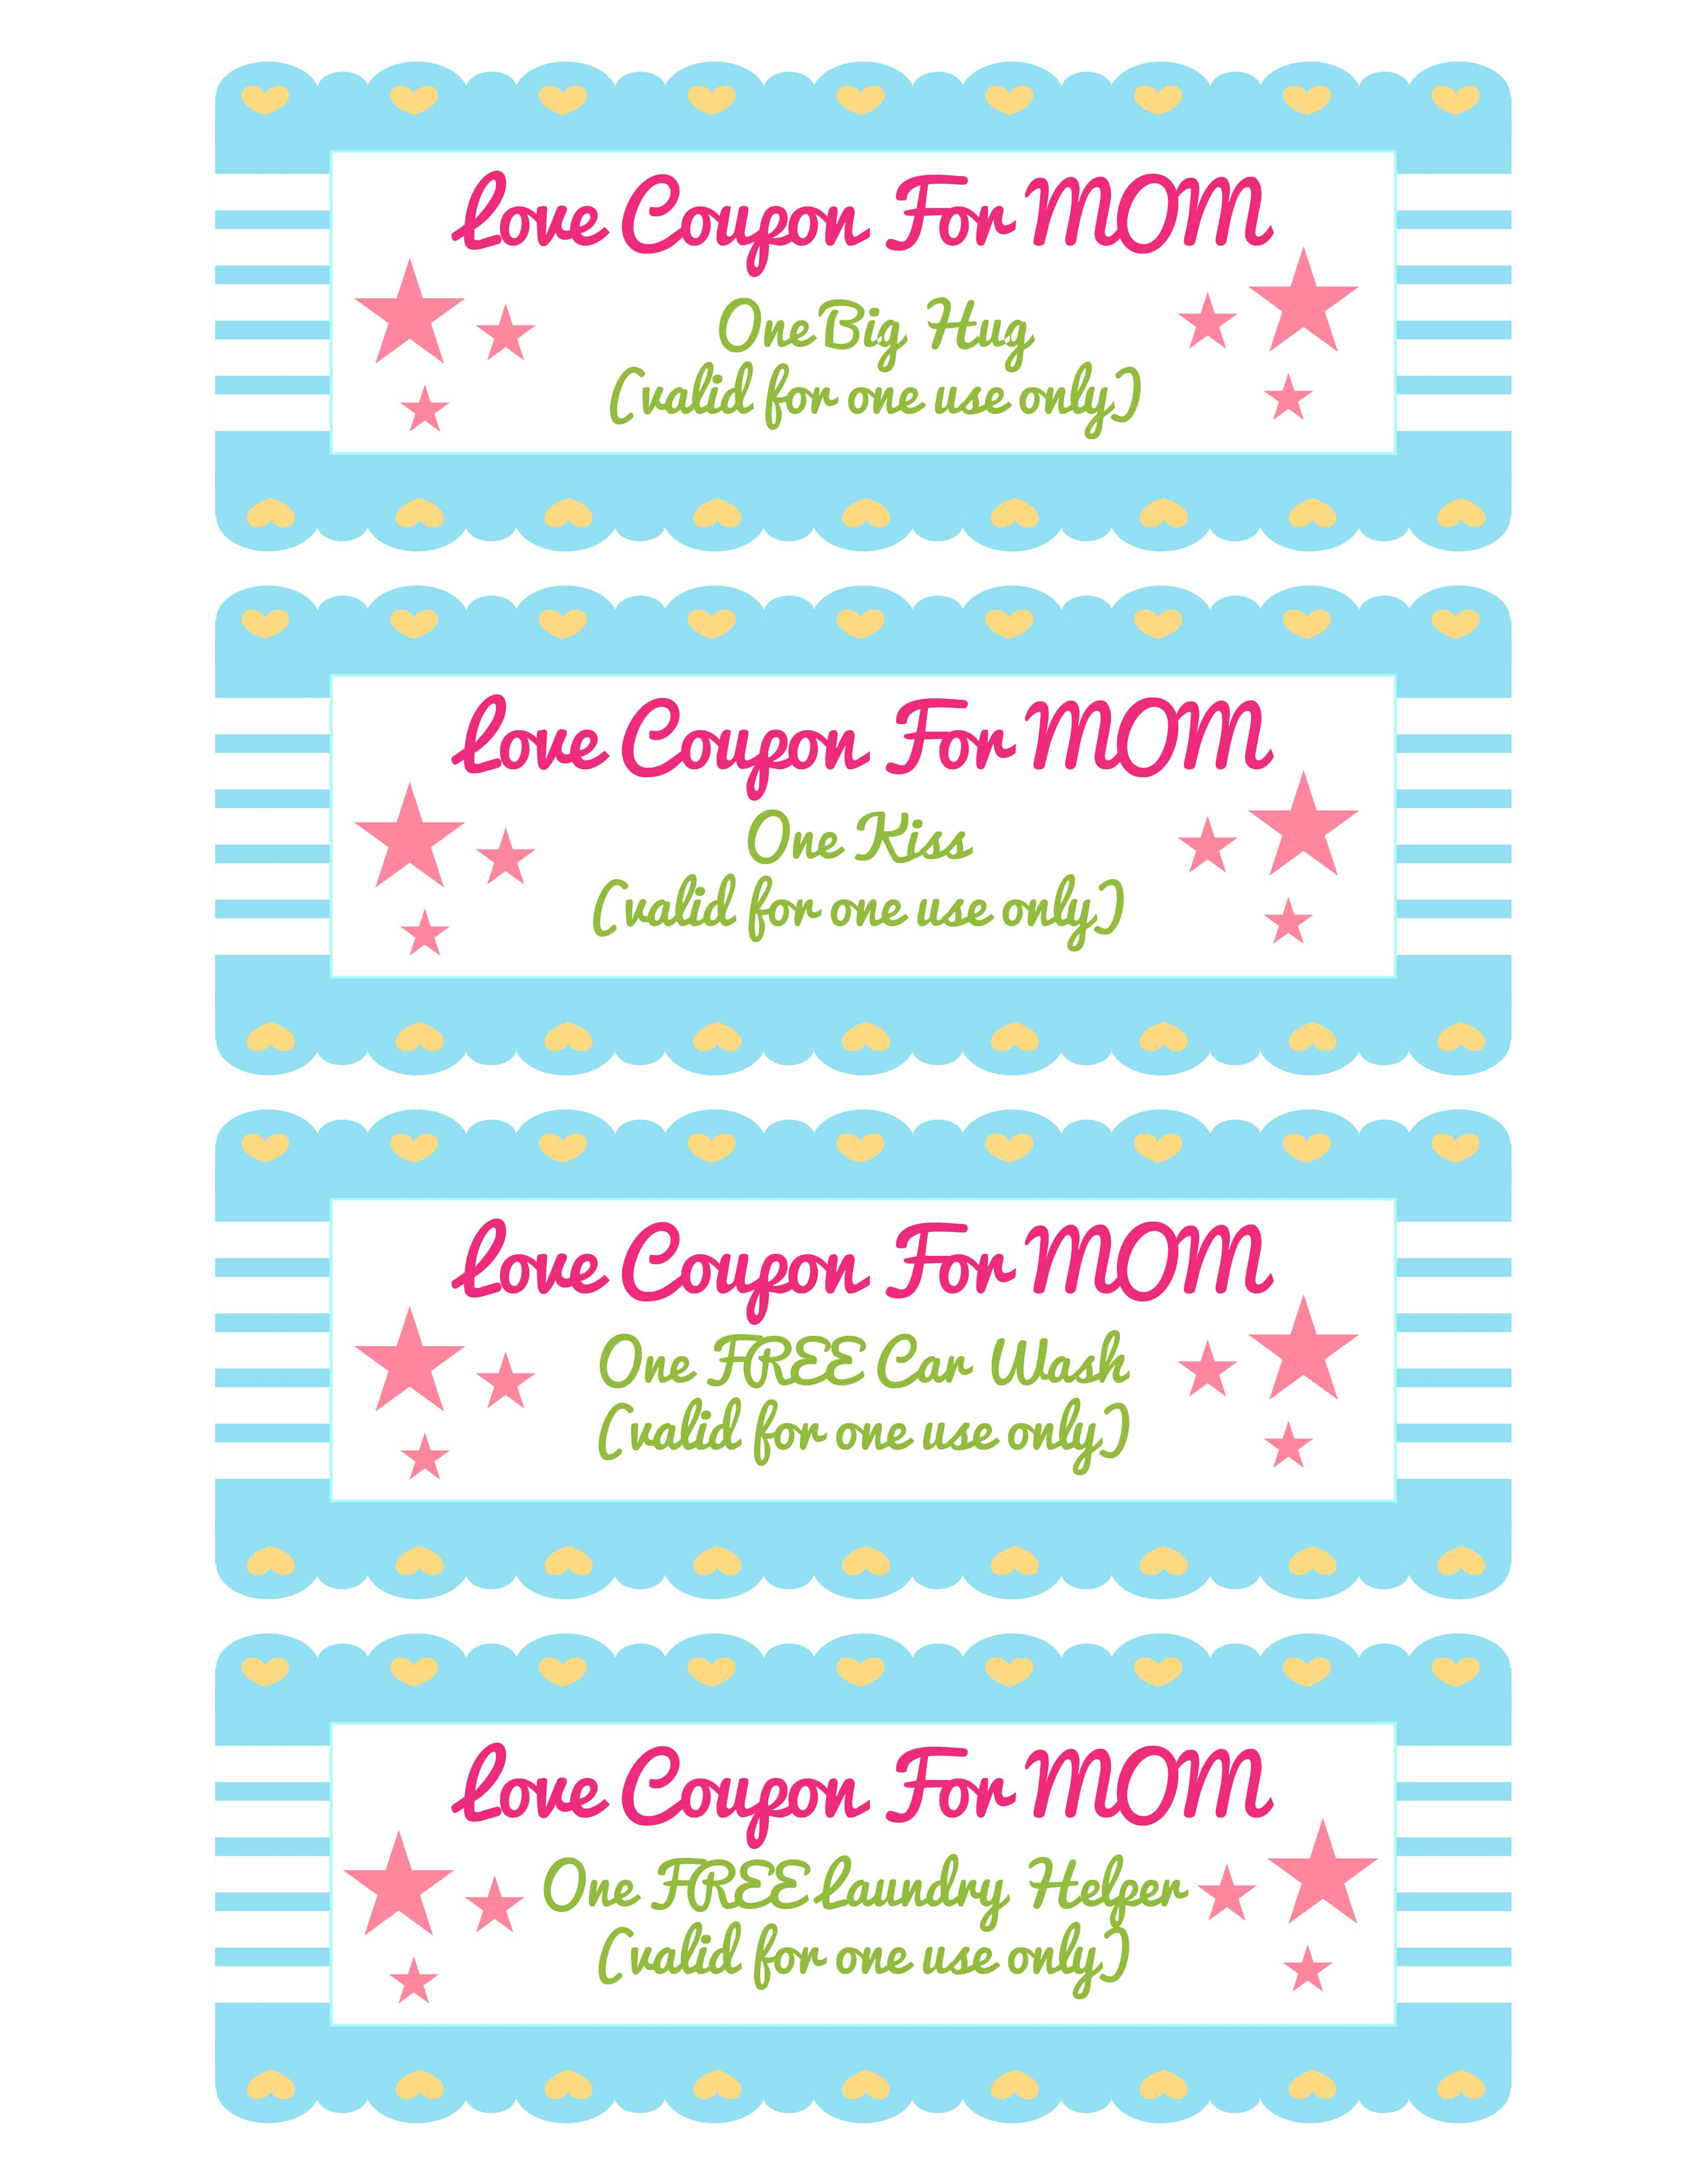 This homemade coupon book for mom template offers options that are perfect for really young children like hugs and kisses.